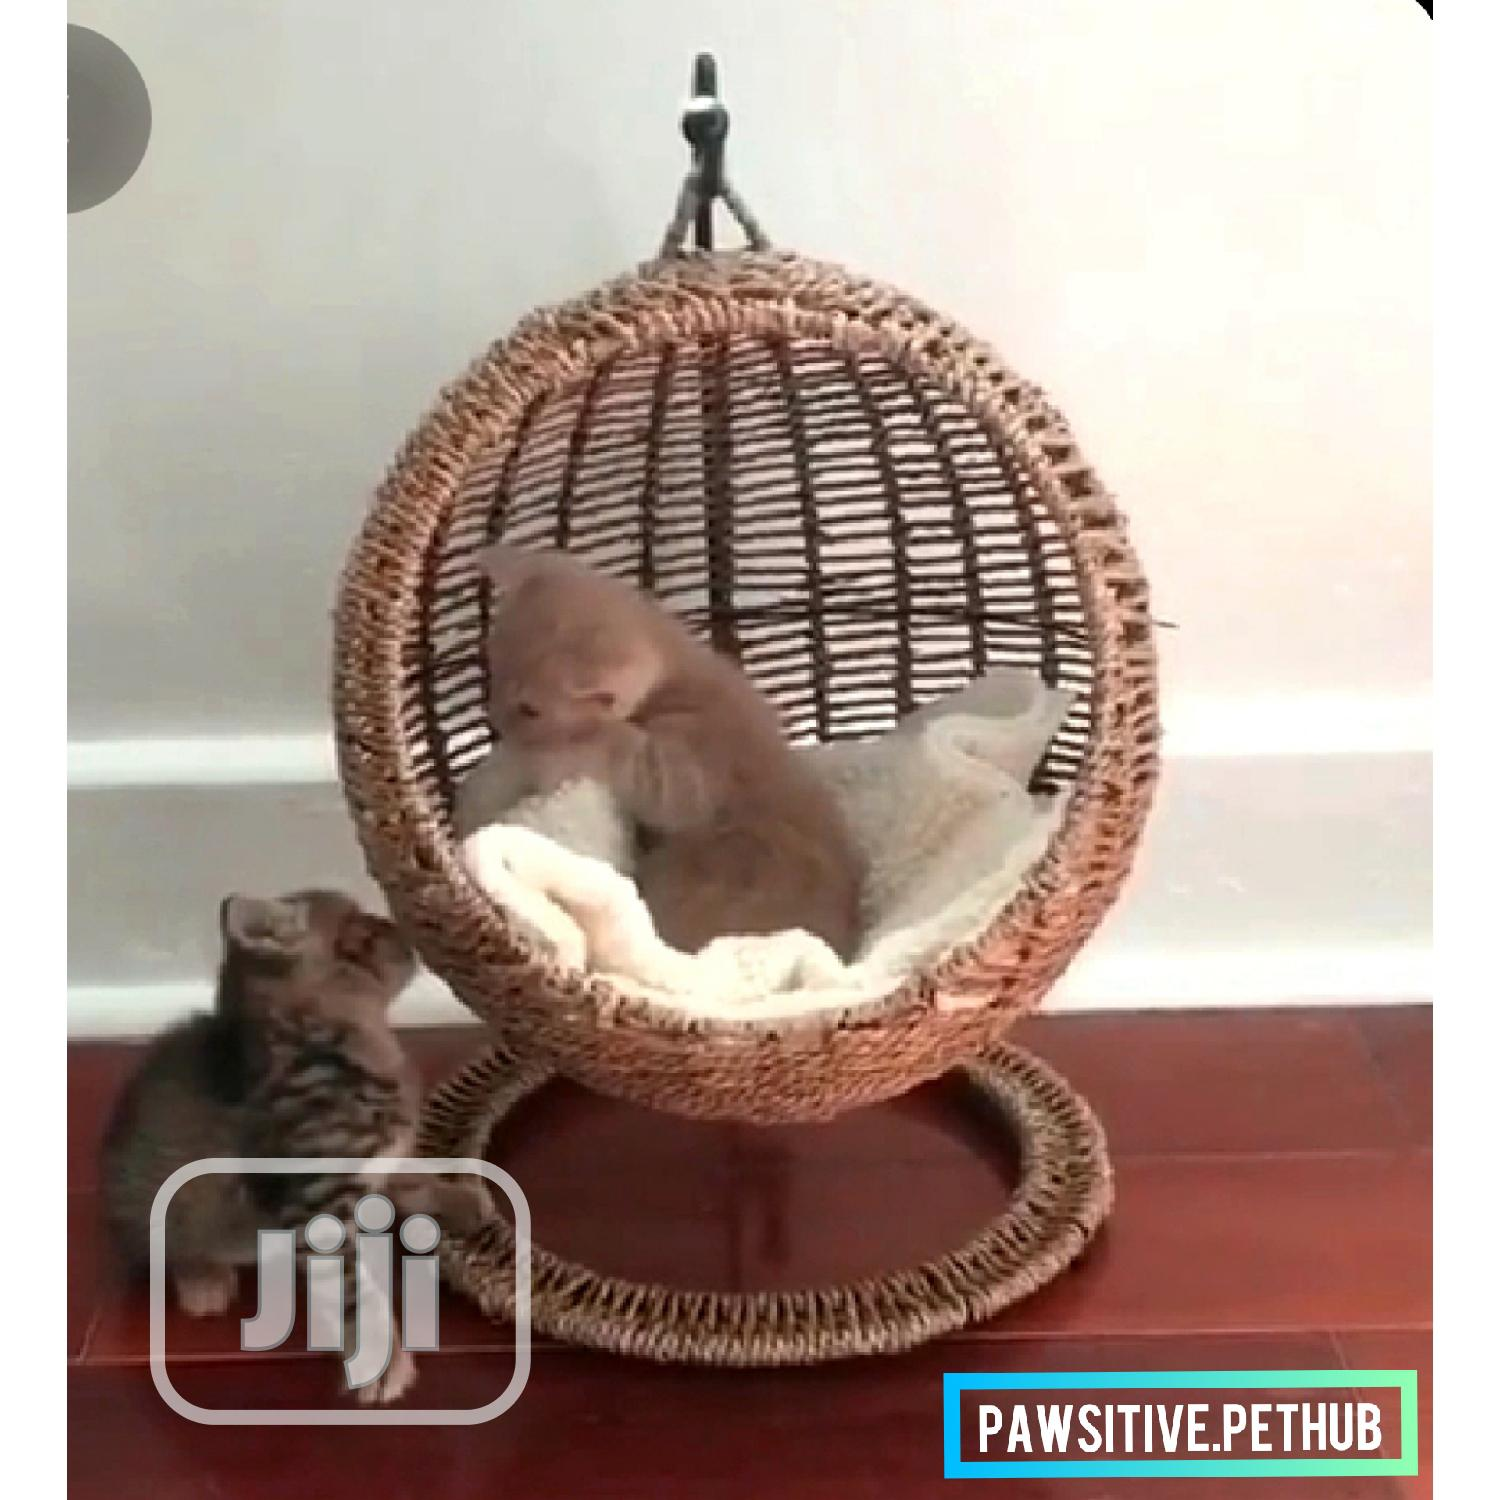 Archive: Artistic Tyre Beds And Hammocks For Puppies,Cats And Bunnies